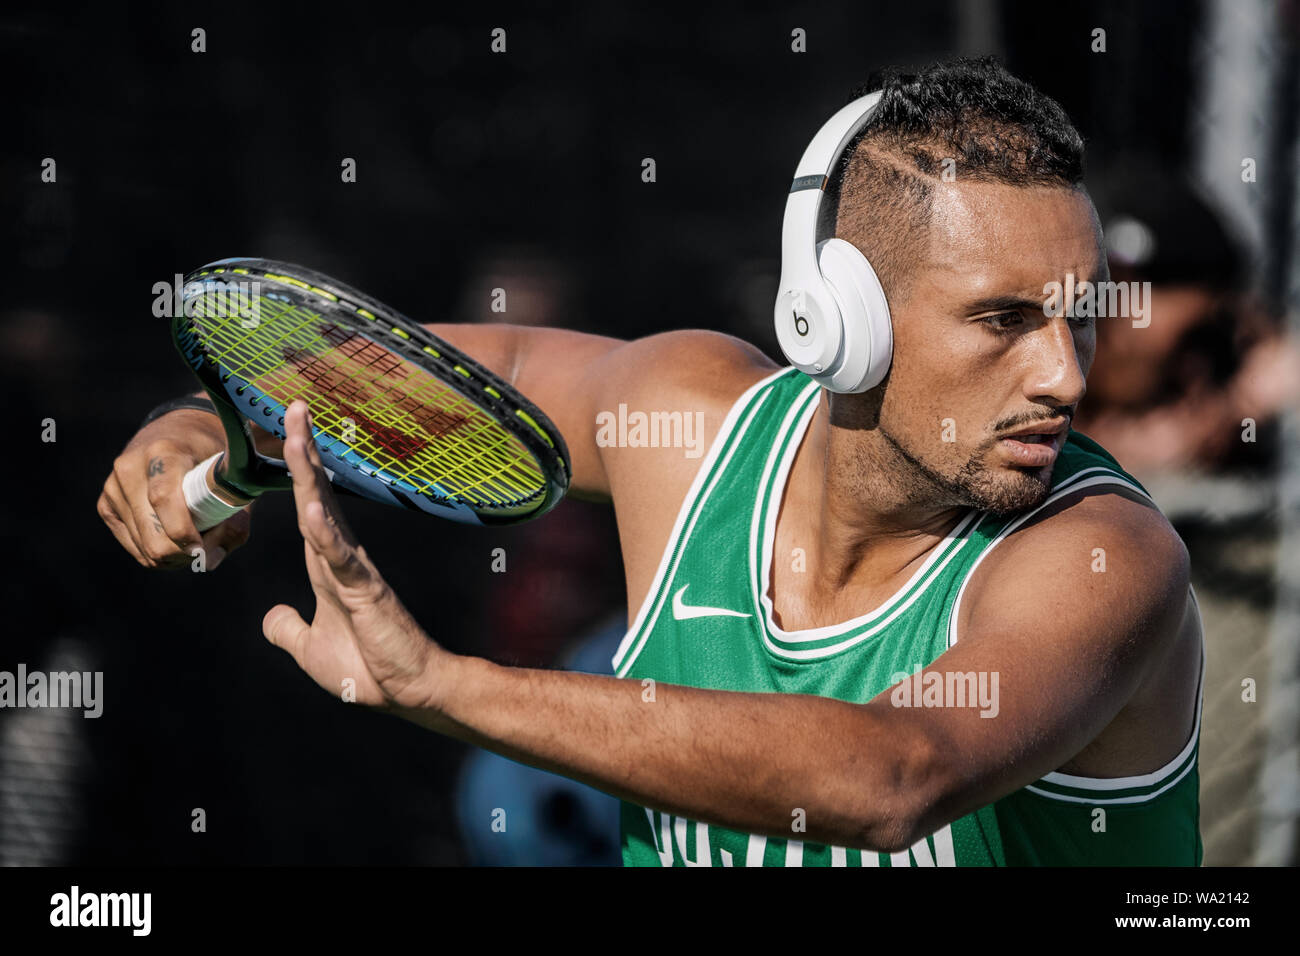 Montreal - AUGUST 5. Nick Kyrgios, professional tennis player and genius at training during ATP Tour Masters 1000 tournament, Canada Open aka Rogers Cup in Montreal August 5 2019. Stock Photo